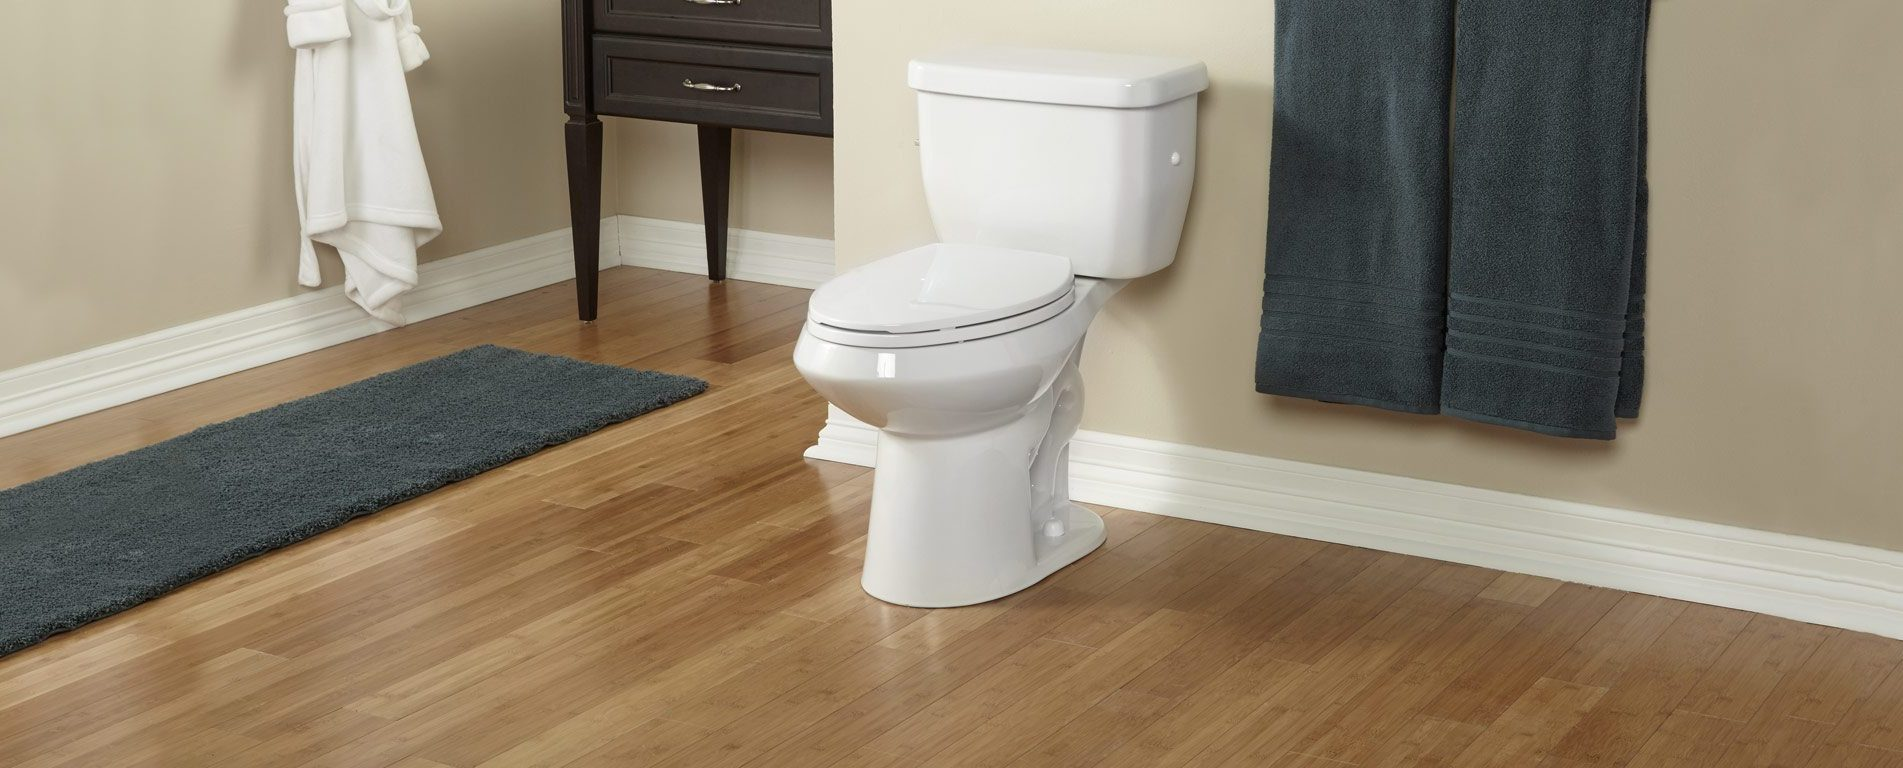 Sentinel™ 1.28 GPF - Elongated Toilet – Niagara Conservation